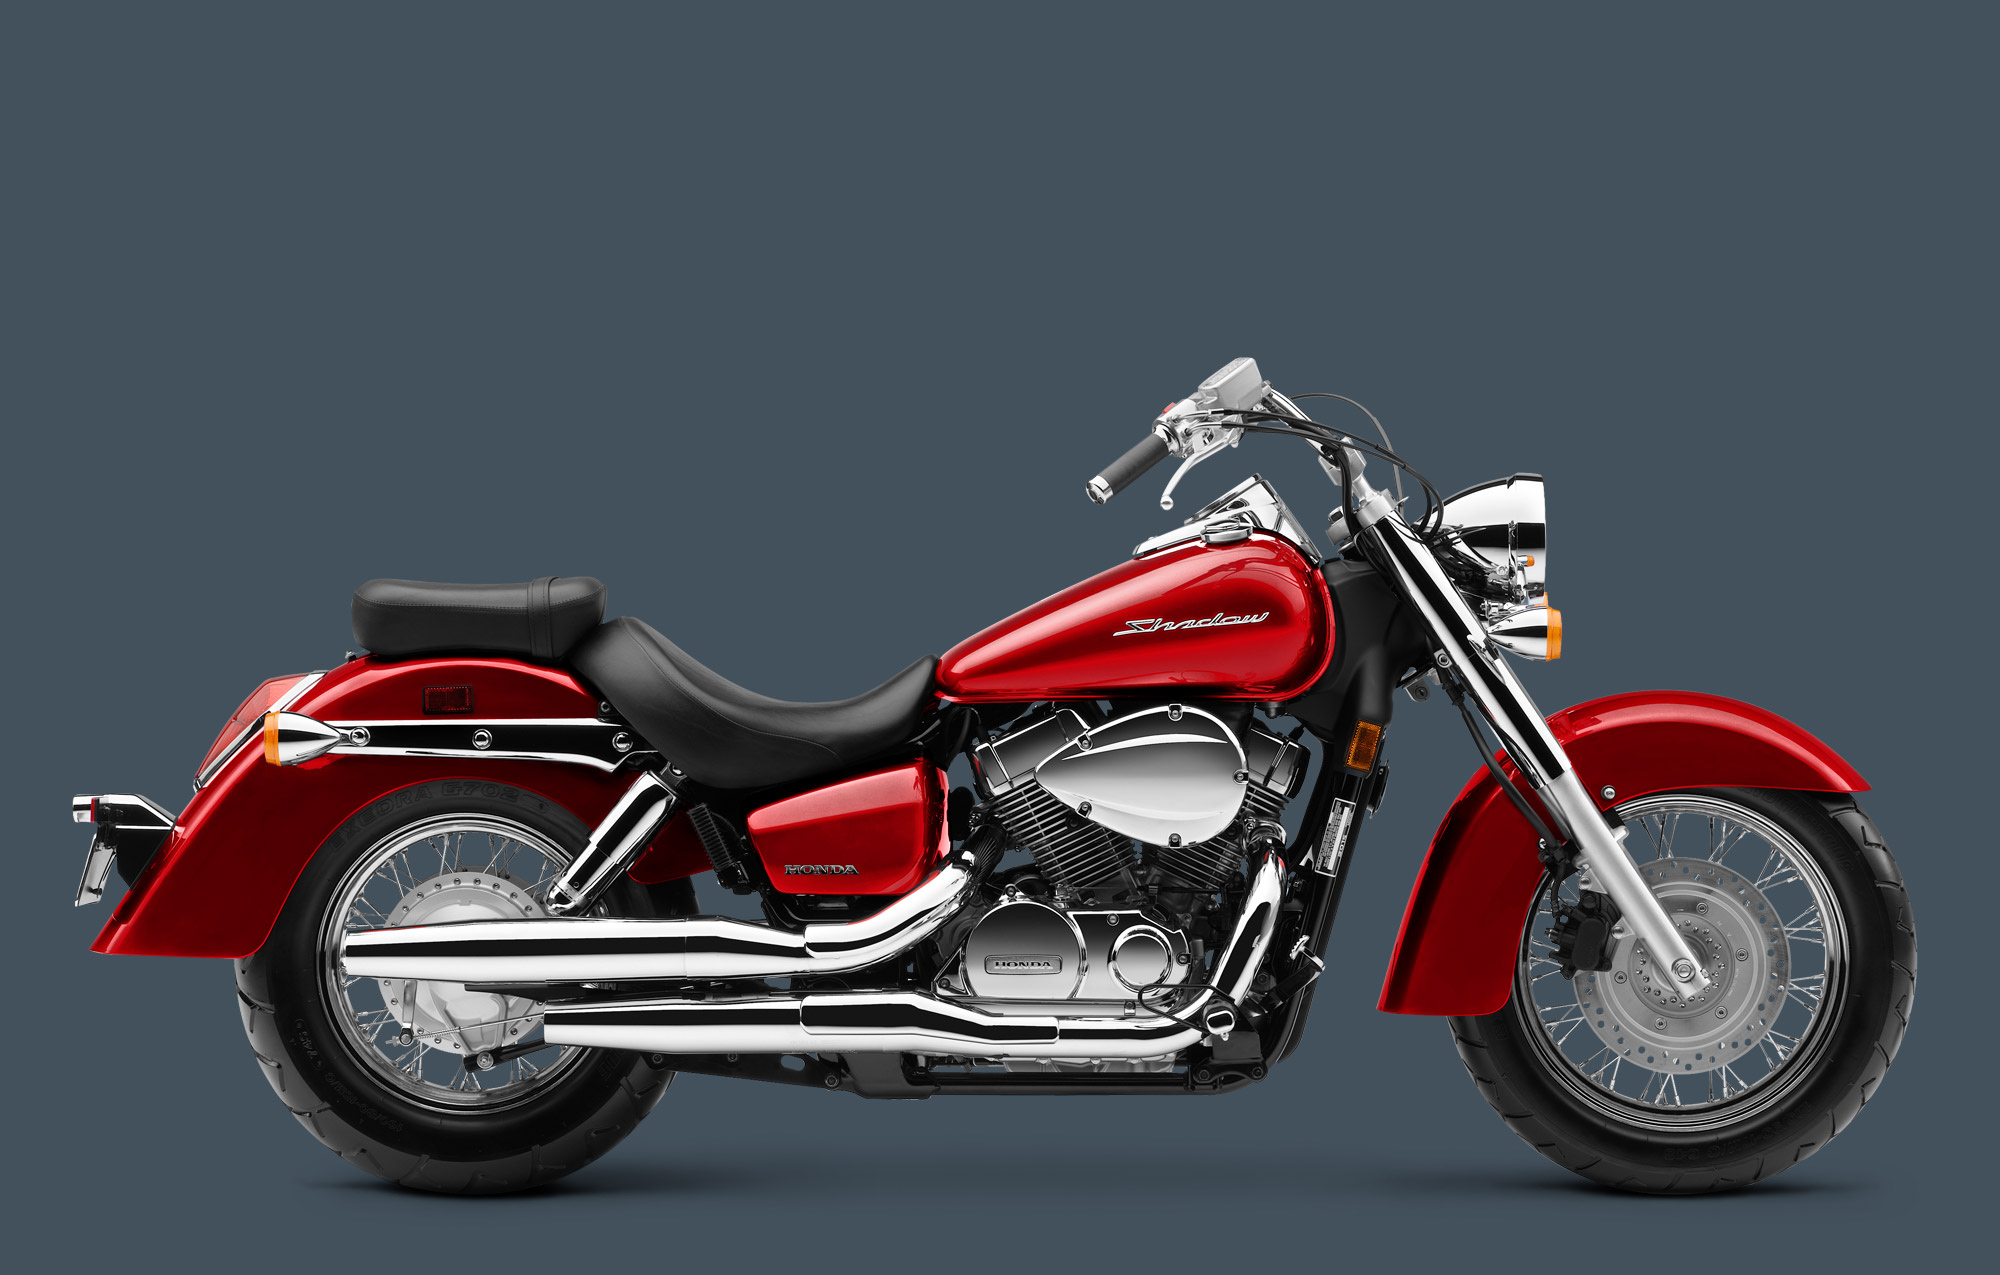 honda shadow motorcycle wiring diagram wiring diagrammassive recall for honda shadow motorcycles announced autoevolutionhonda shadow motorcycle wiring diagram 4